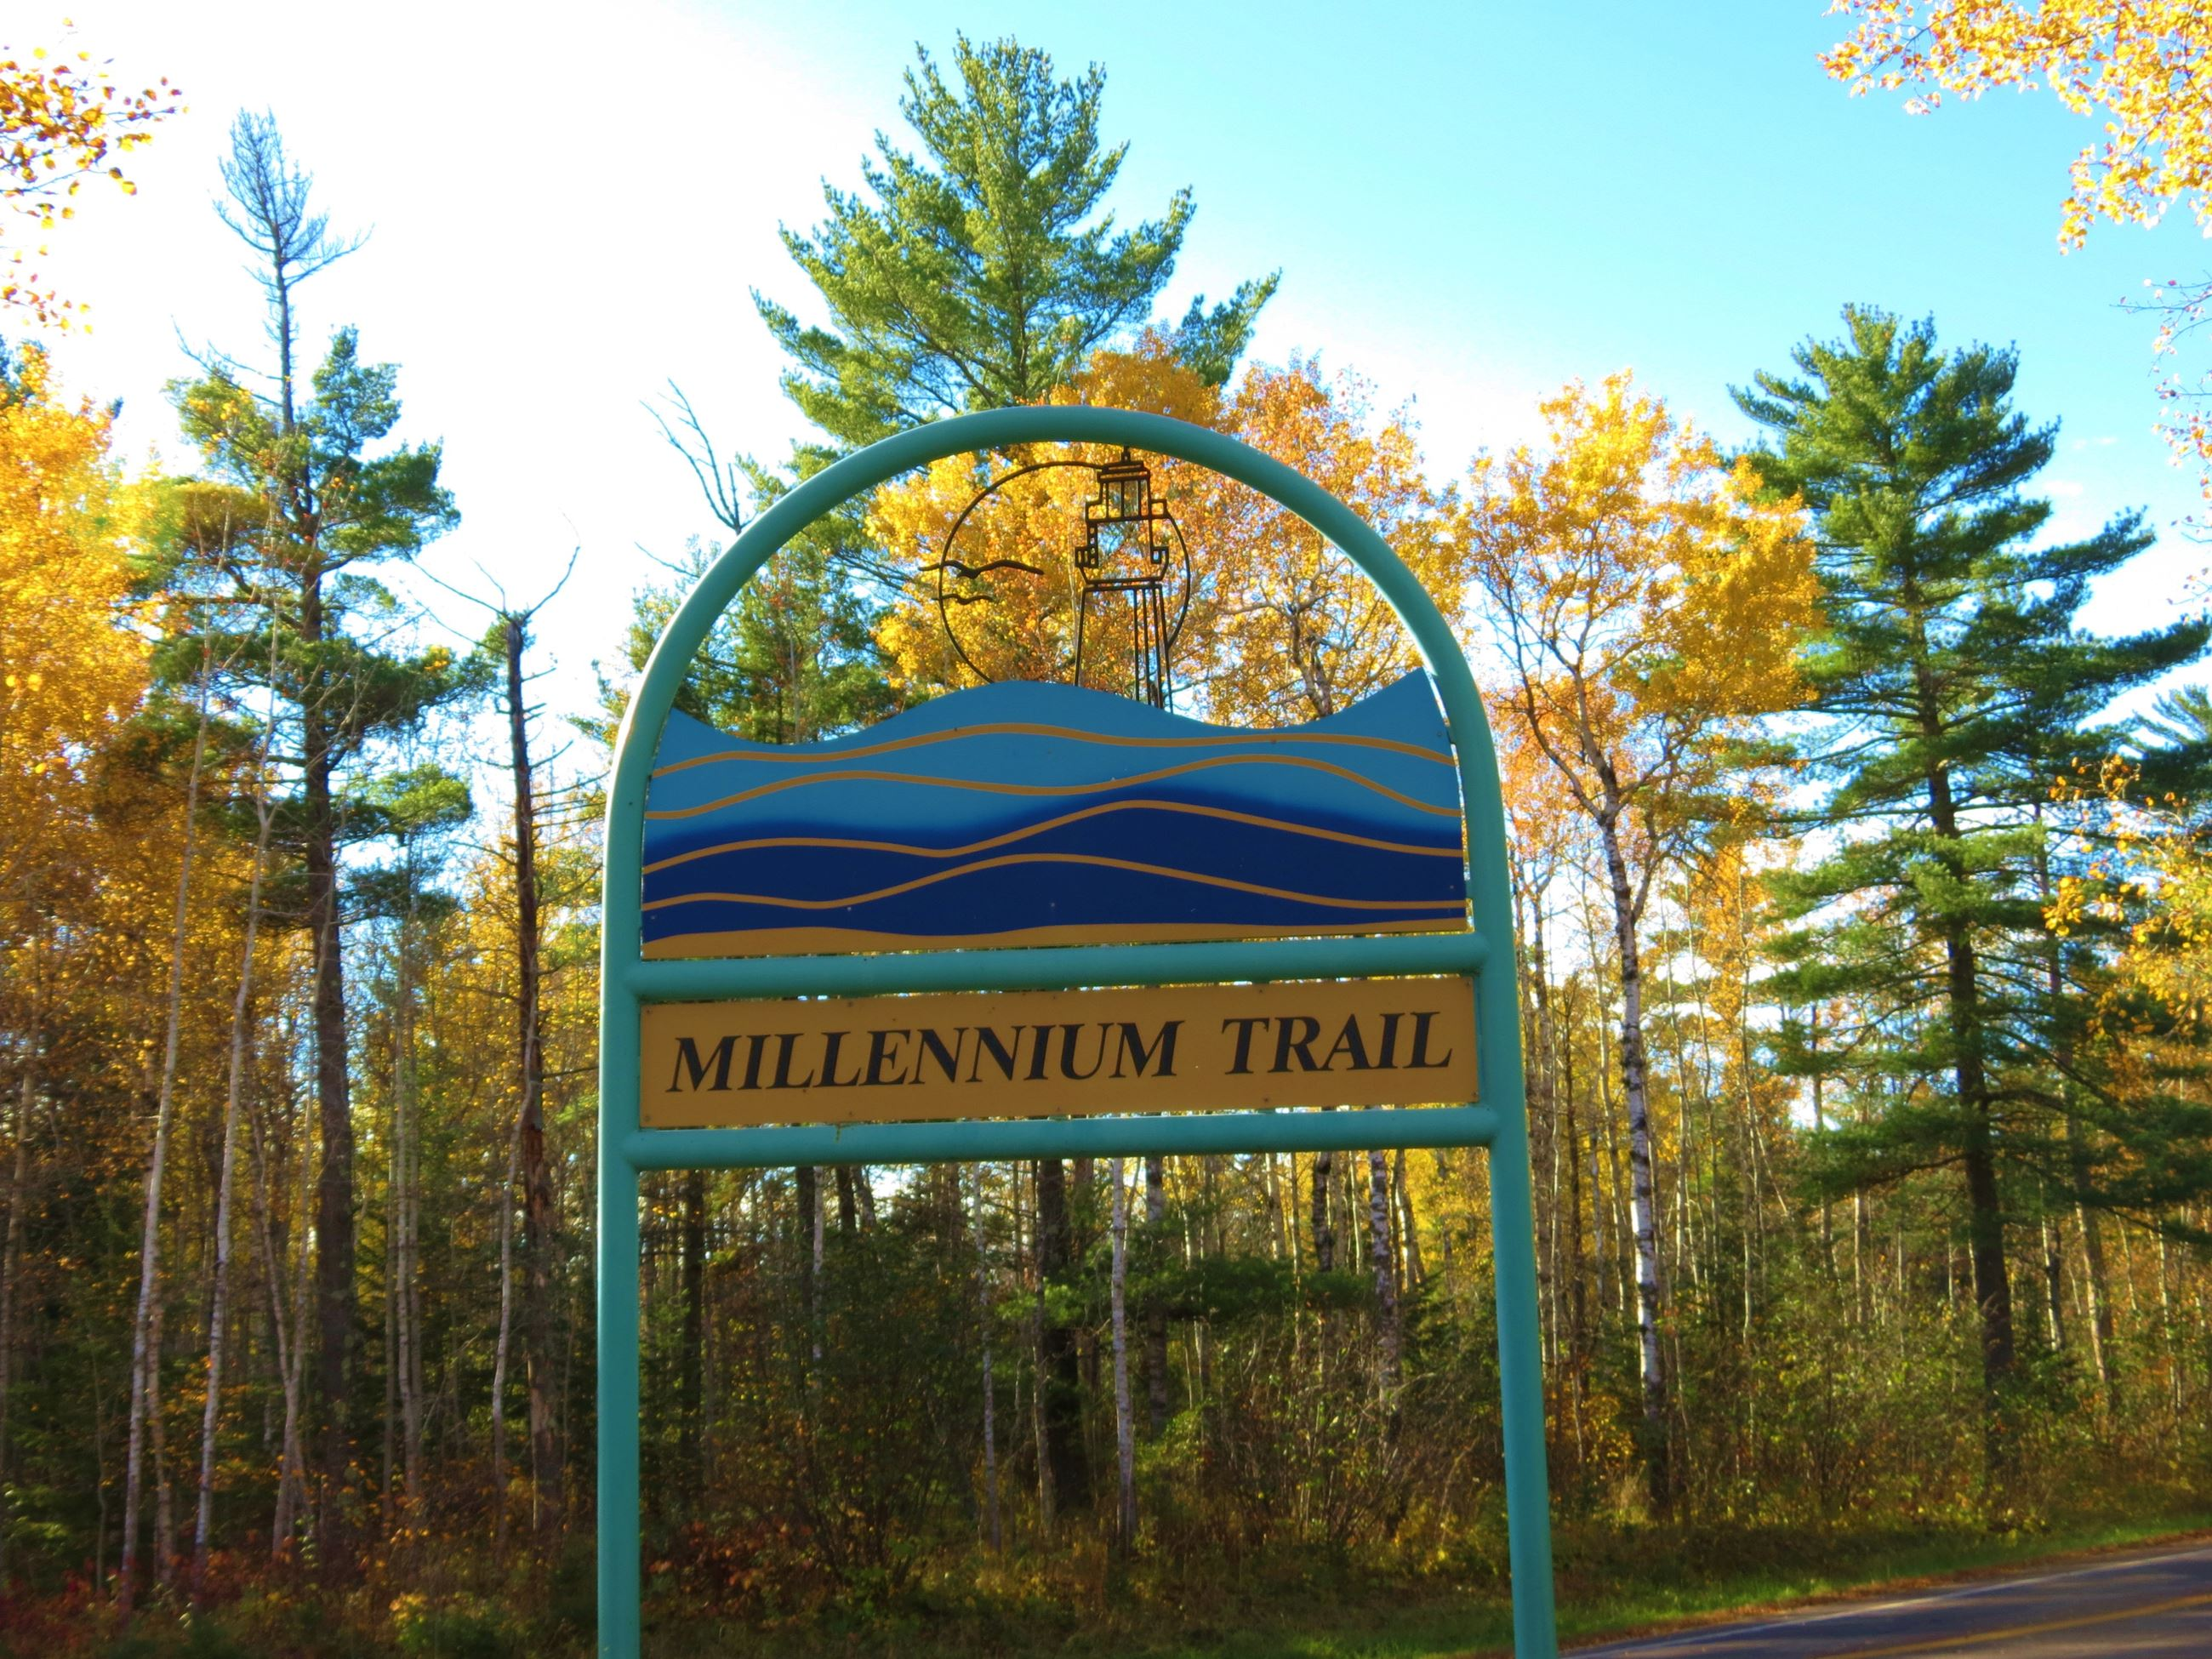 Millennium Trail sign with autumn leaves